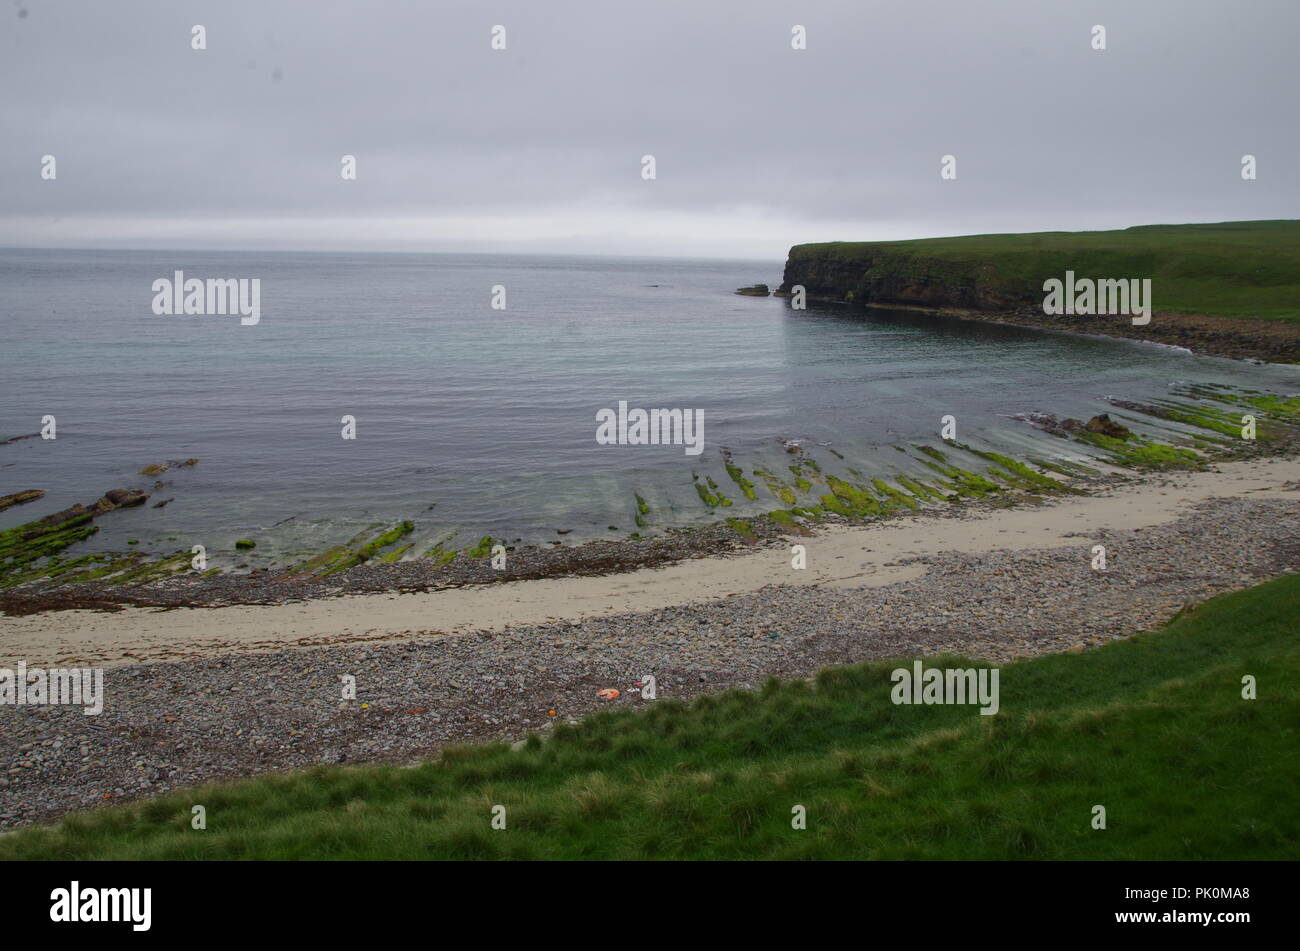 John o' groats (Duncansby head) to lands end. Cornwall. End to end trail. Caithness. Highlands. Scotland. UK - Stock Image